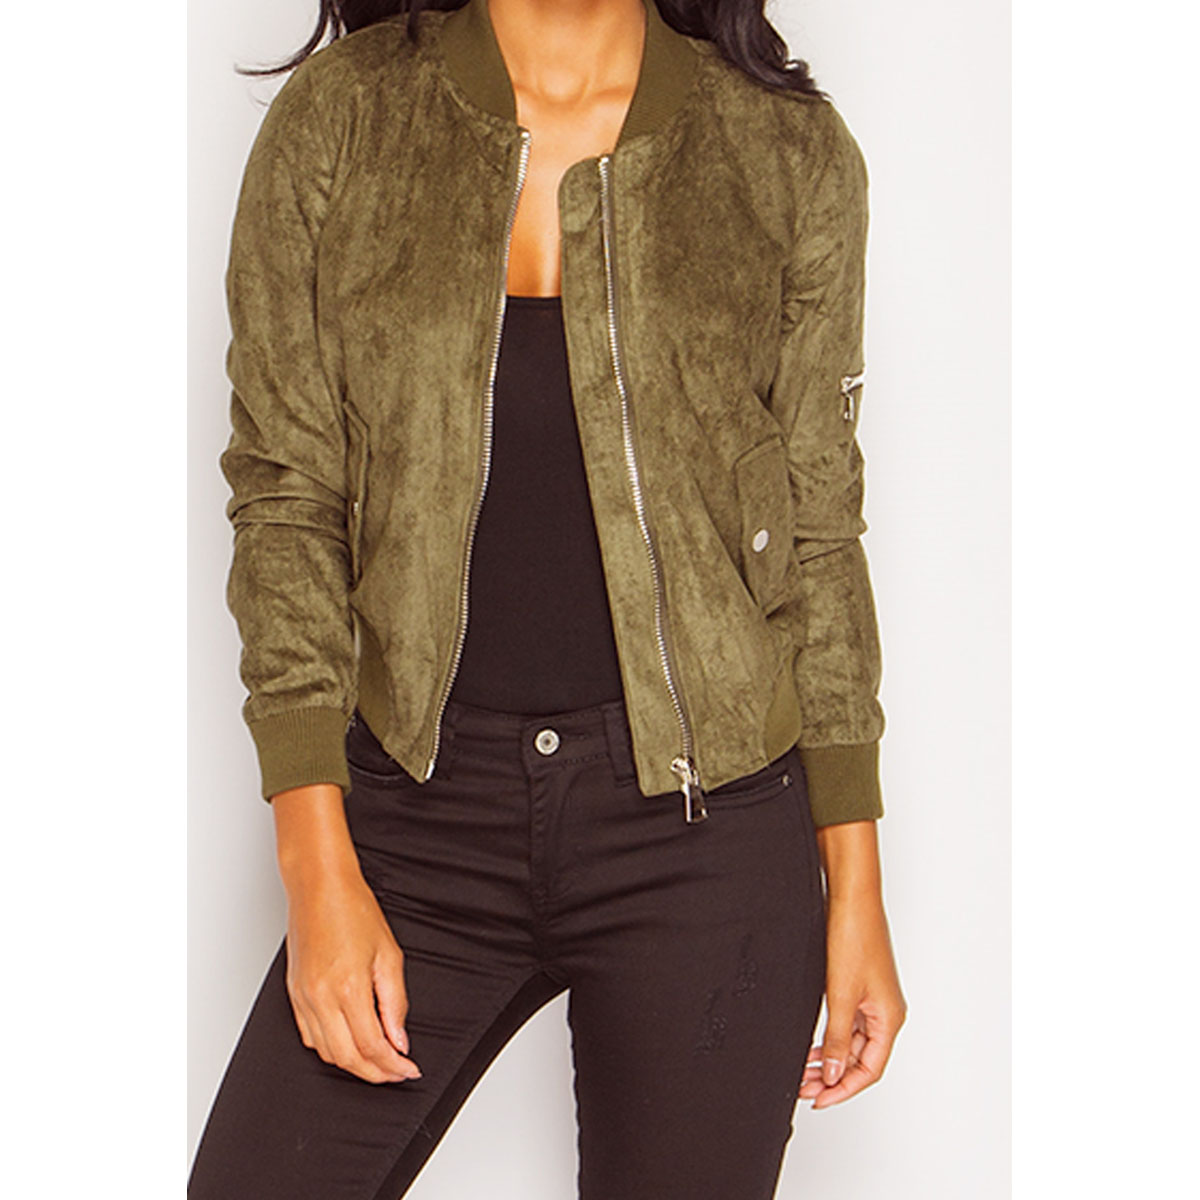 Suede jacket women